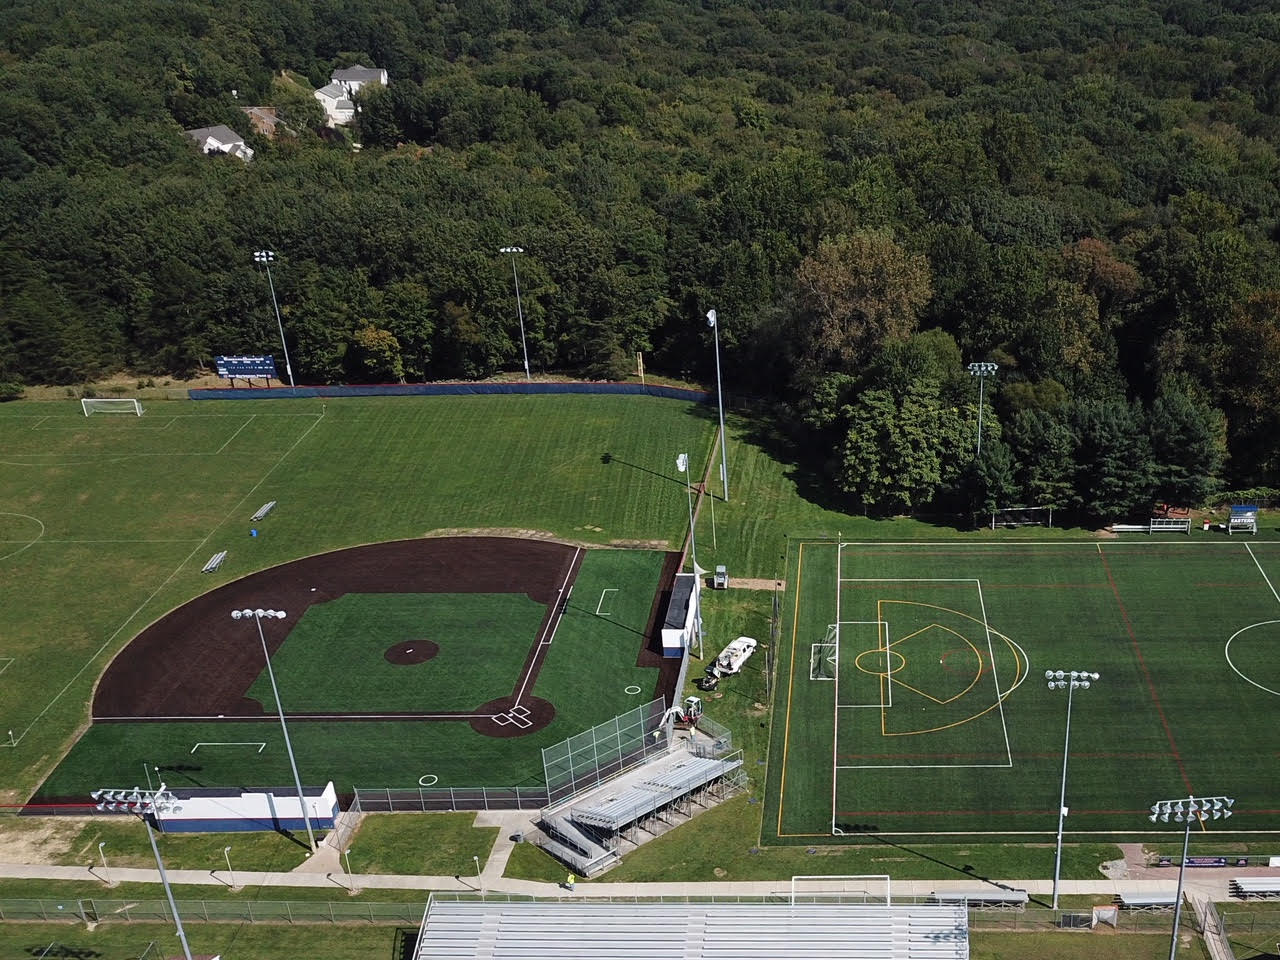 EASTERN REGIONAL SPORTS COMPLEXES NOW FEATURE SHAW SPORTS TURF FIELDS